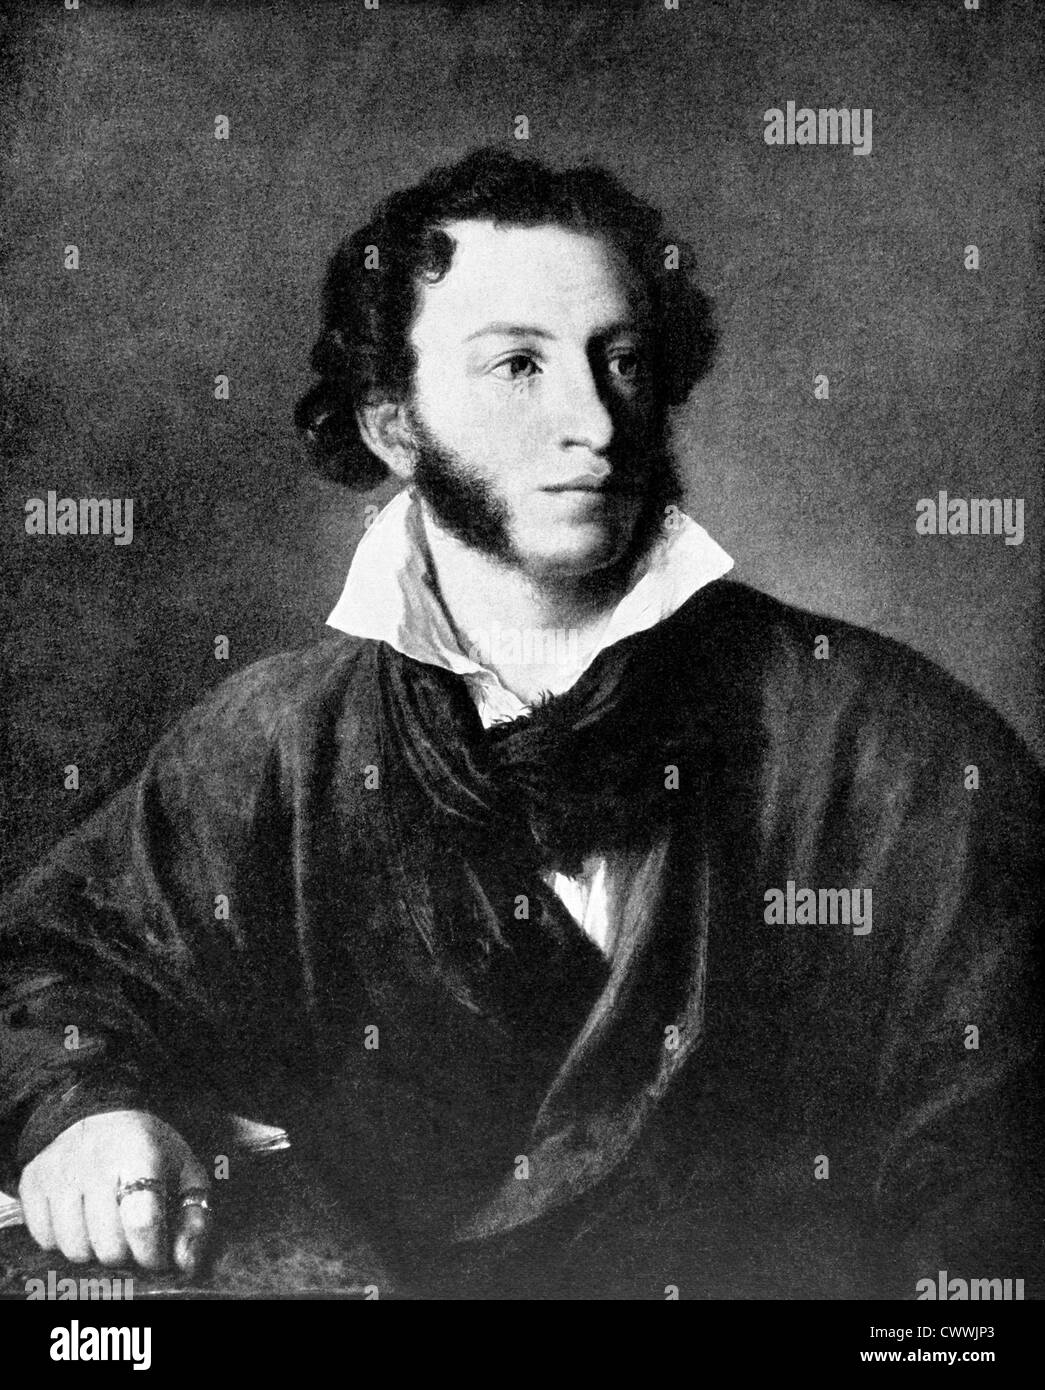 Alexander Pushkin (1799-1837) on antique print from 1899. One of the greatest Russian poets. - Stock Image